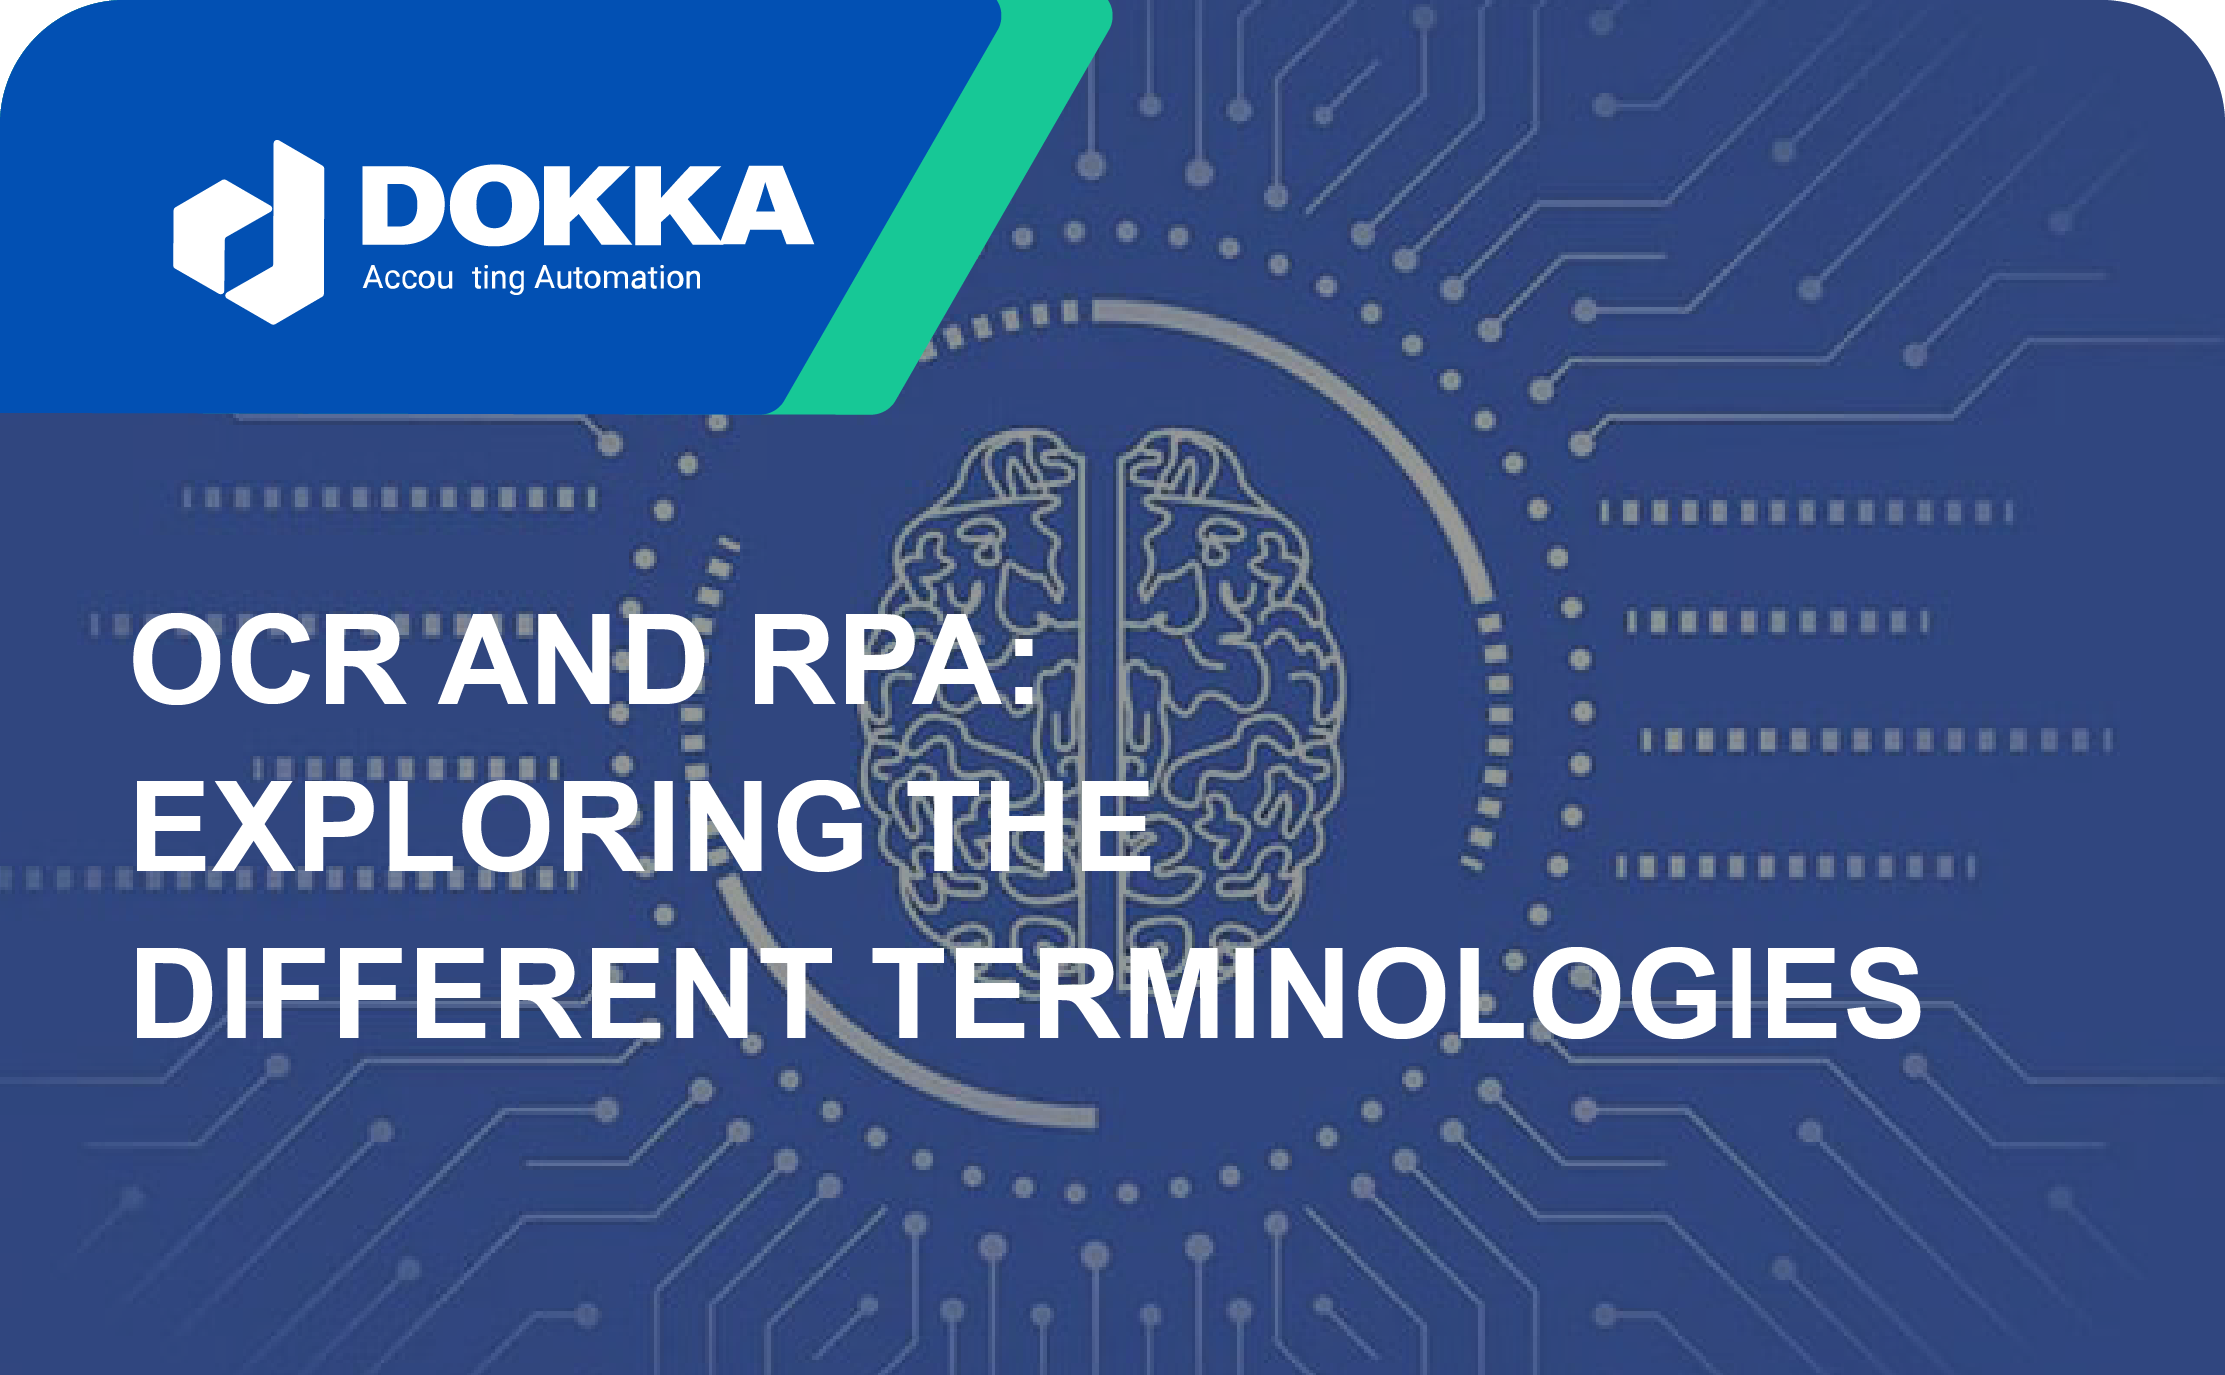 OCR and RPA- Exploring the Different Terminologies